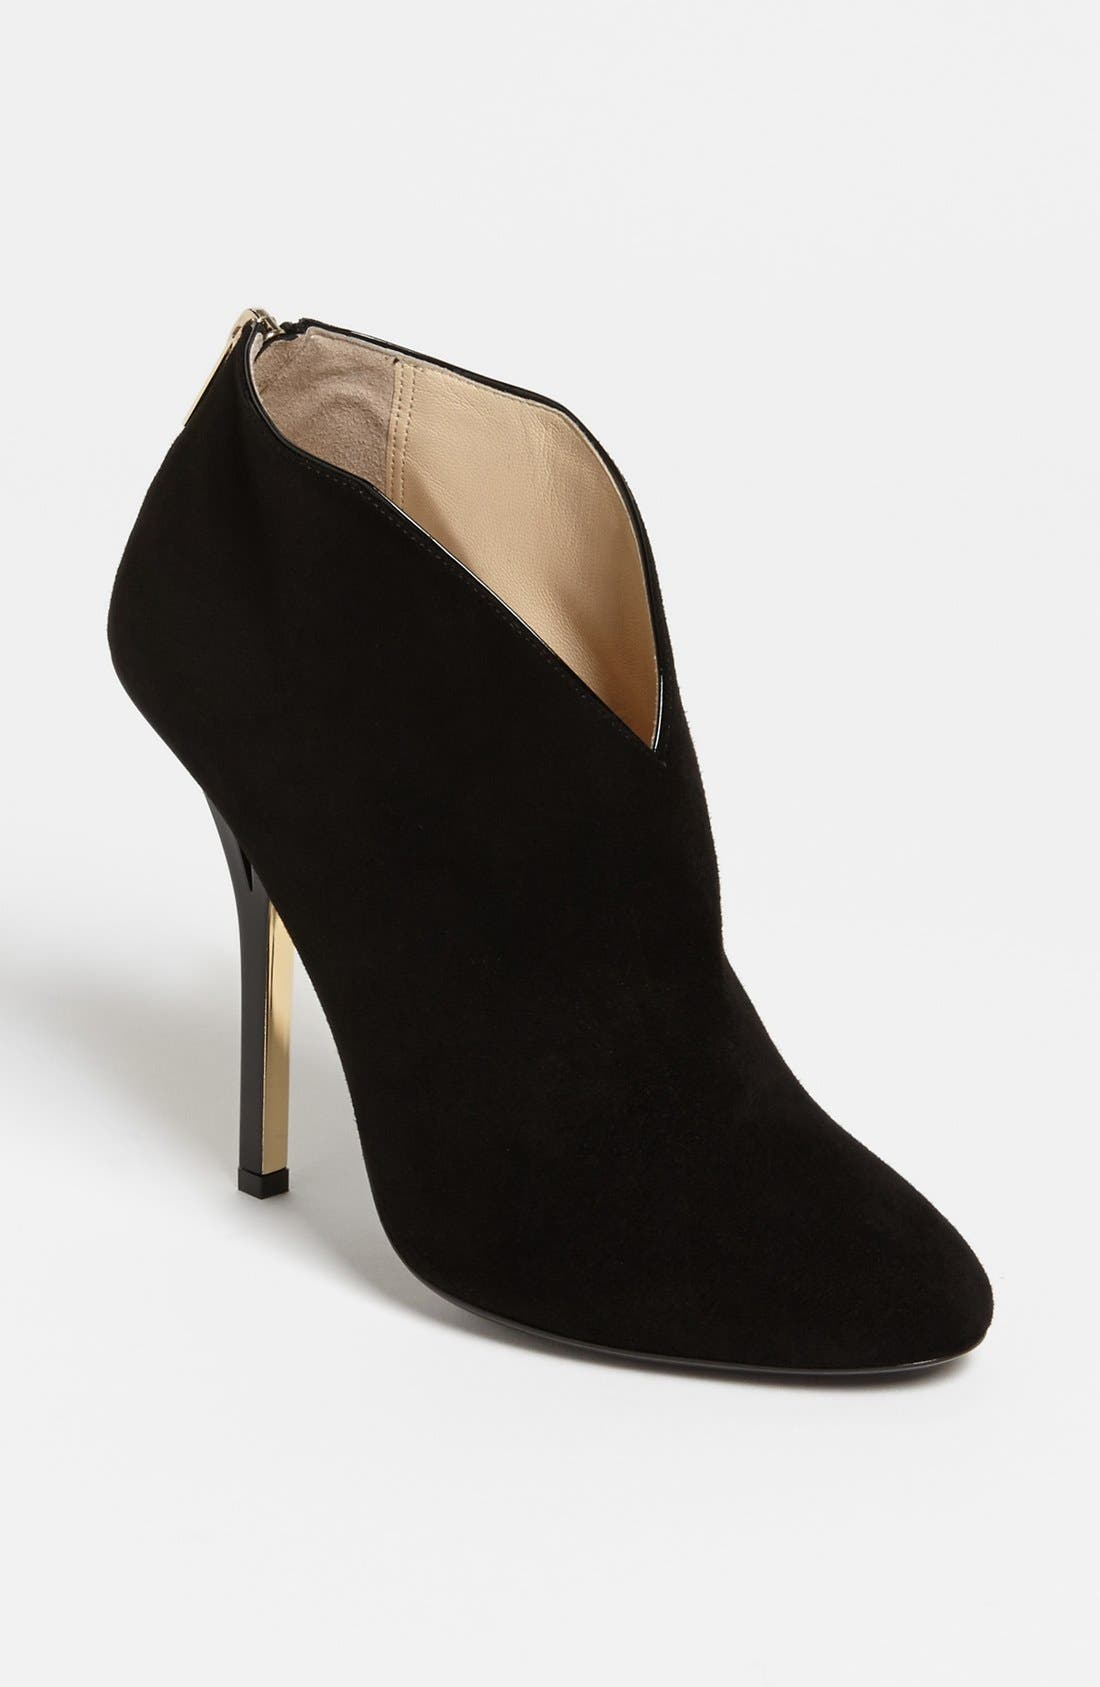 Main Image - Jimmy Choo 'Lane' Bootie